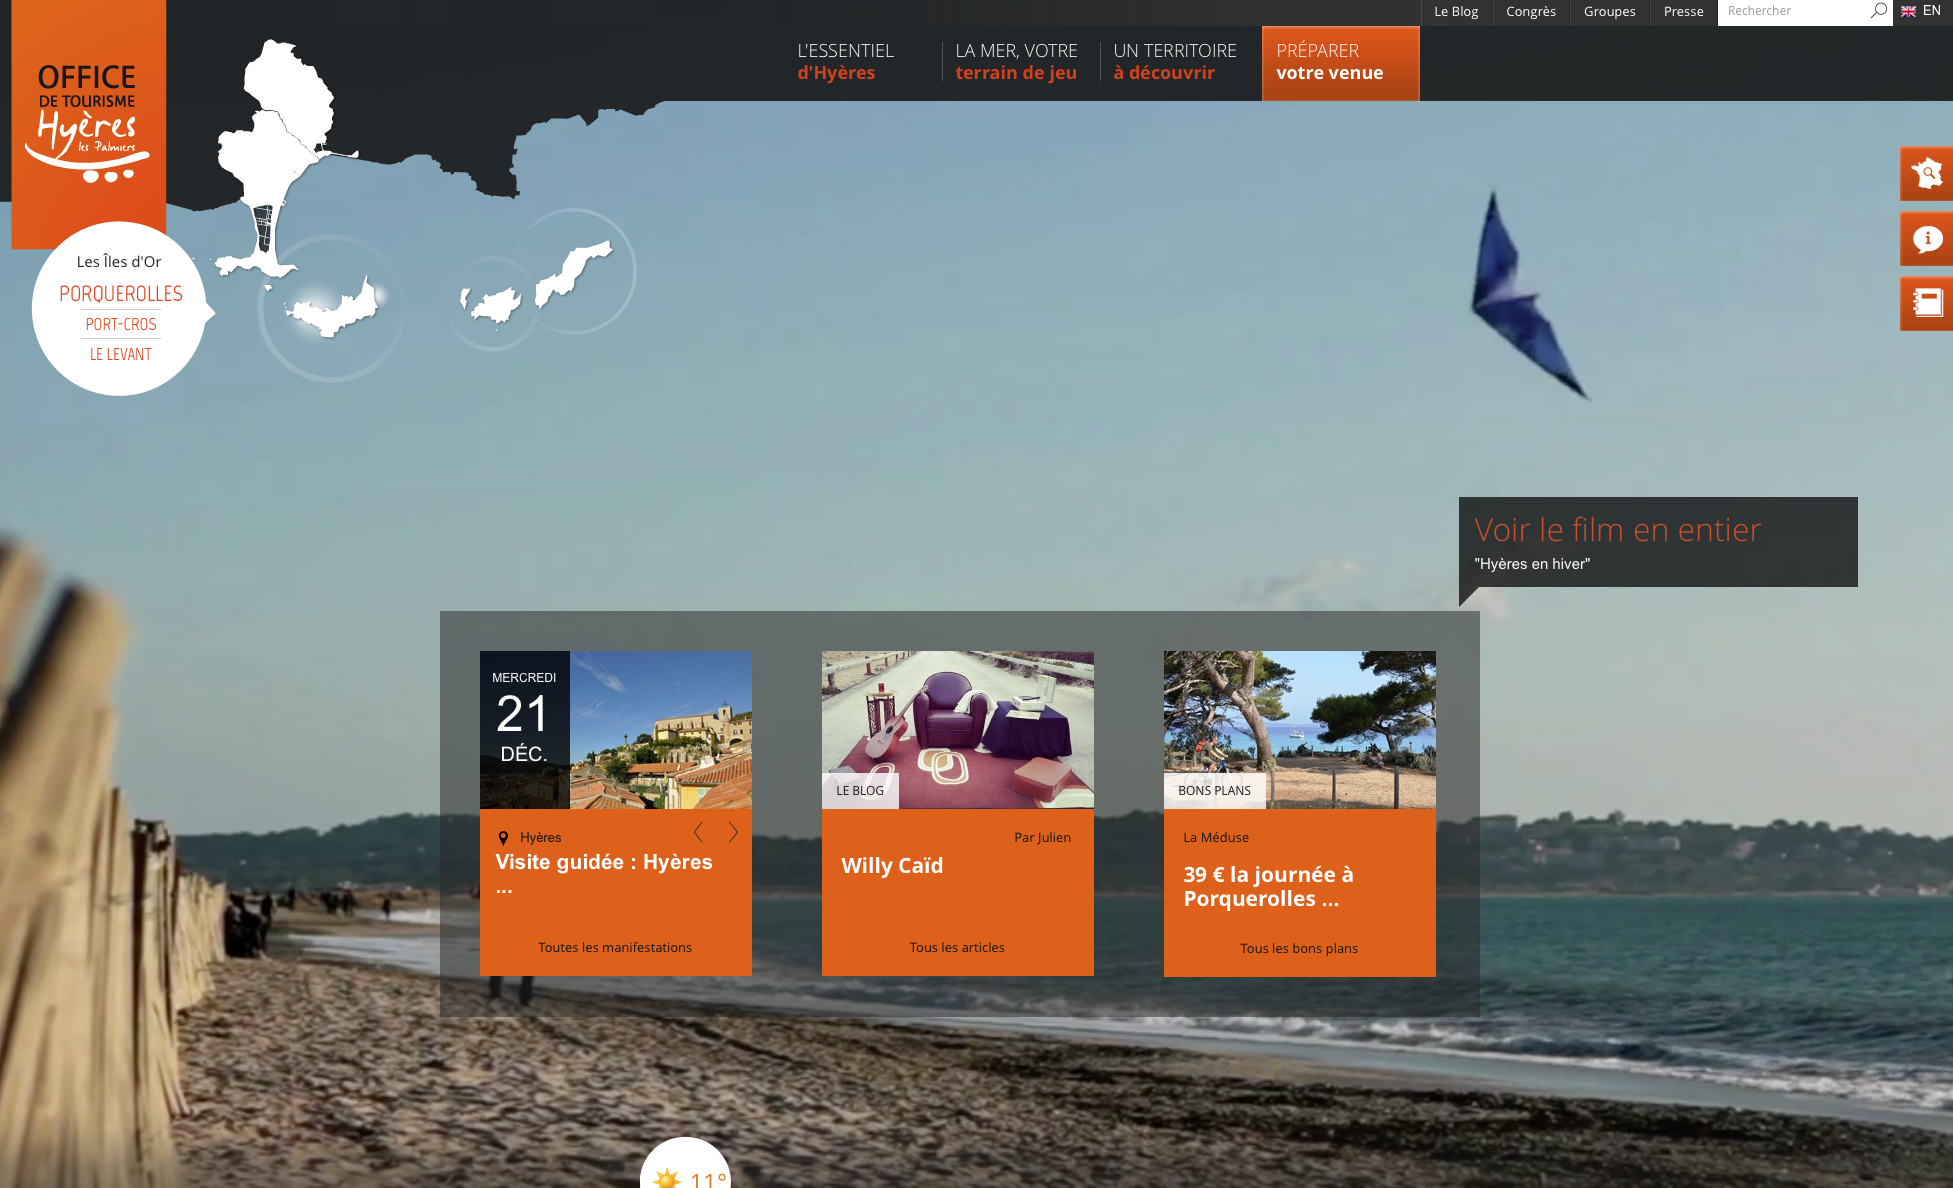 Tourism translation for the Hyeres tourism office